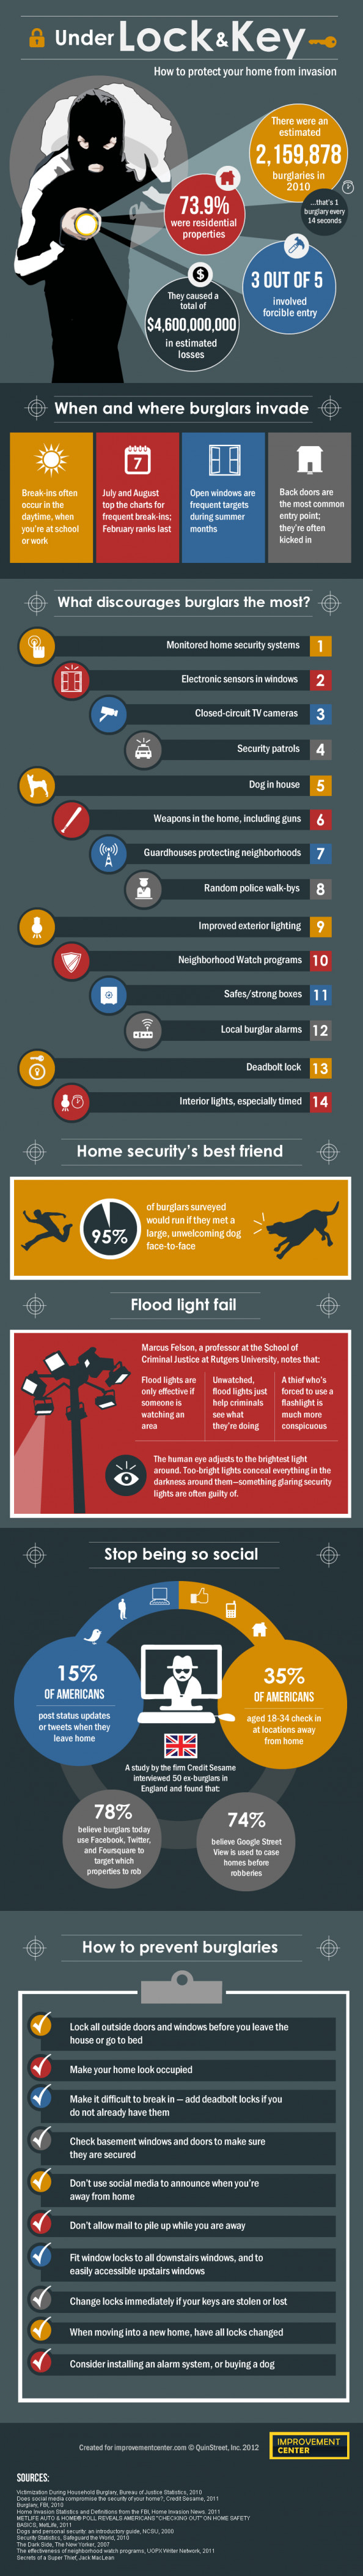 Under lock and key: protecting your home from invasion Infographic